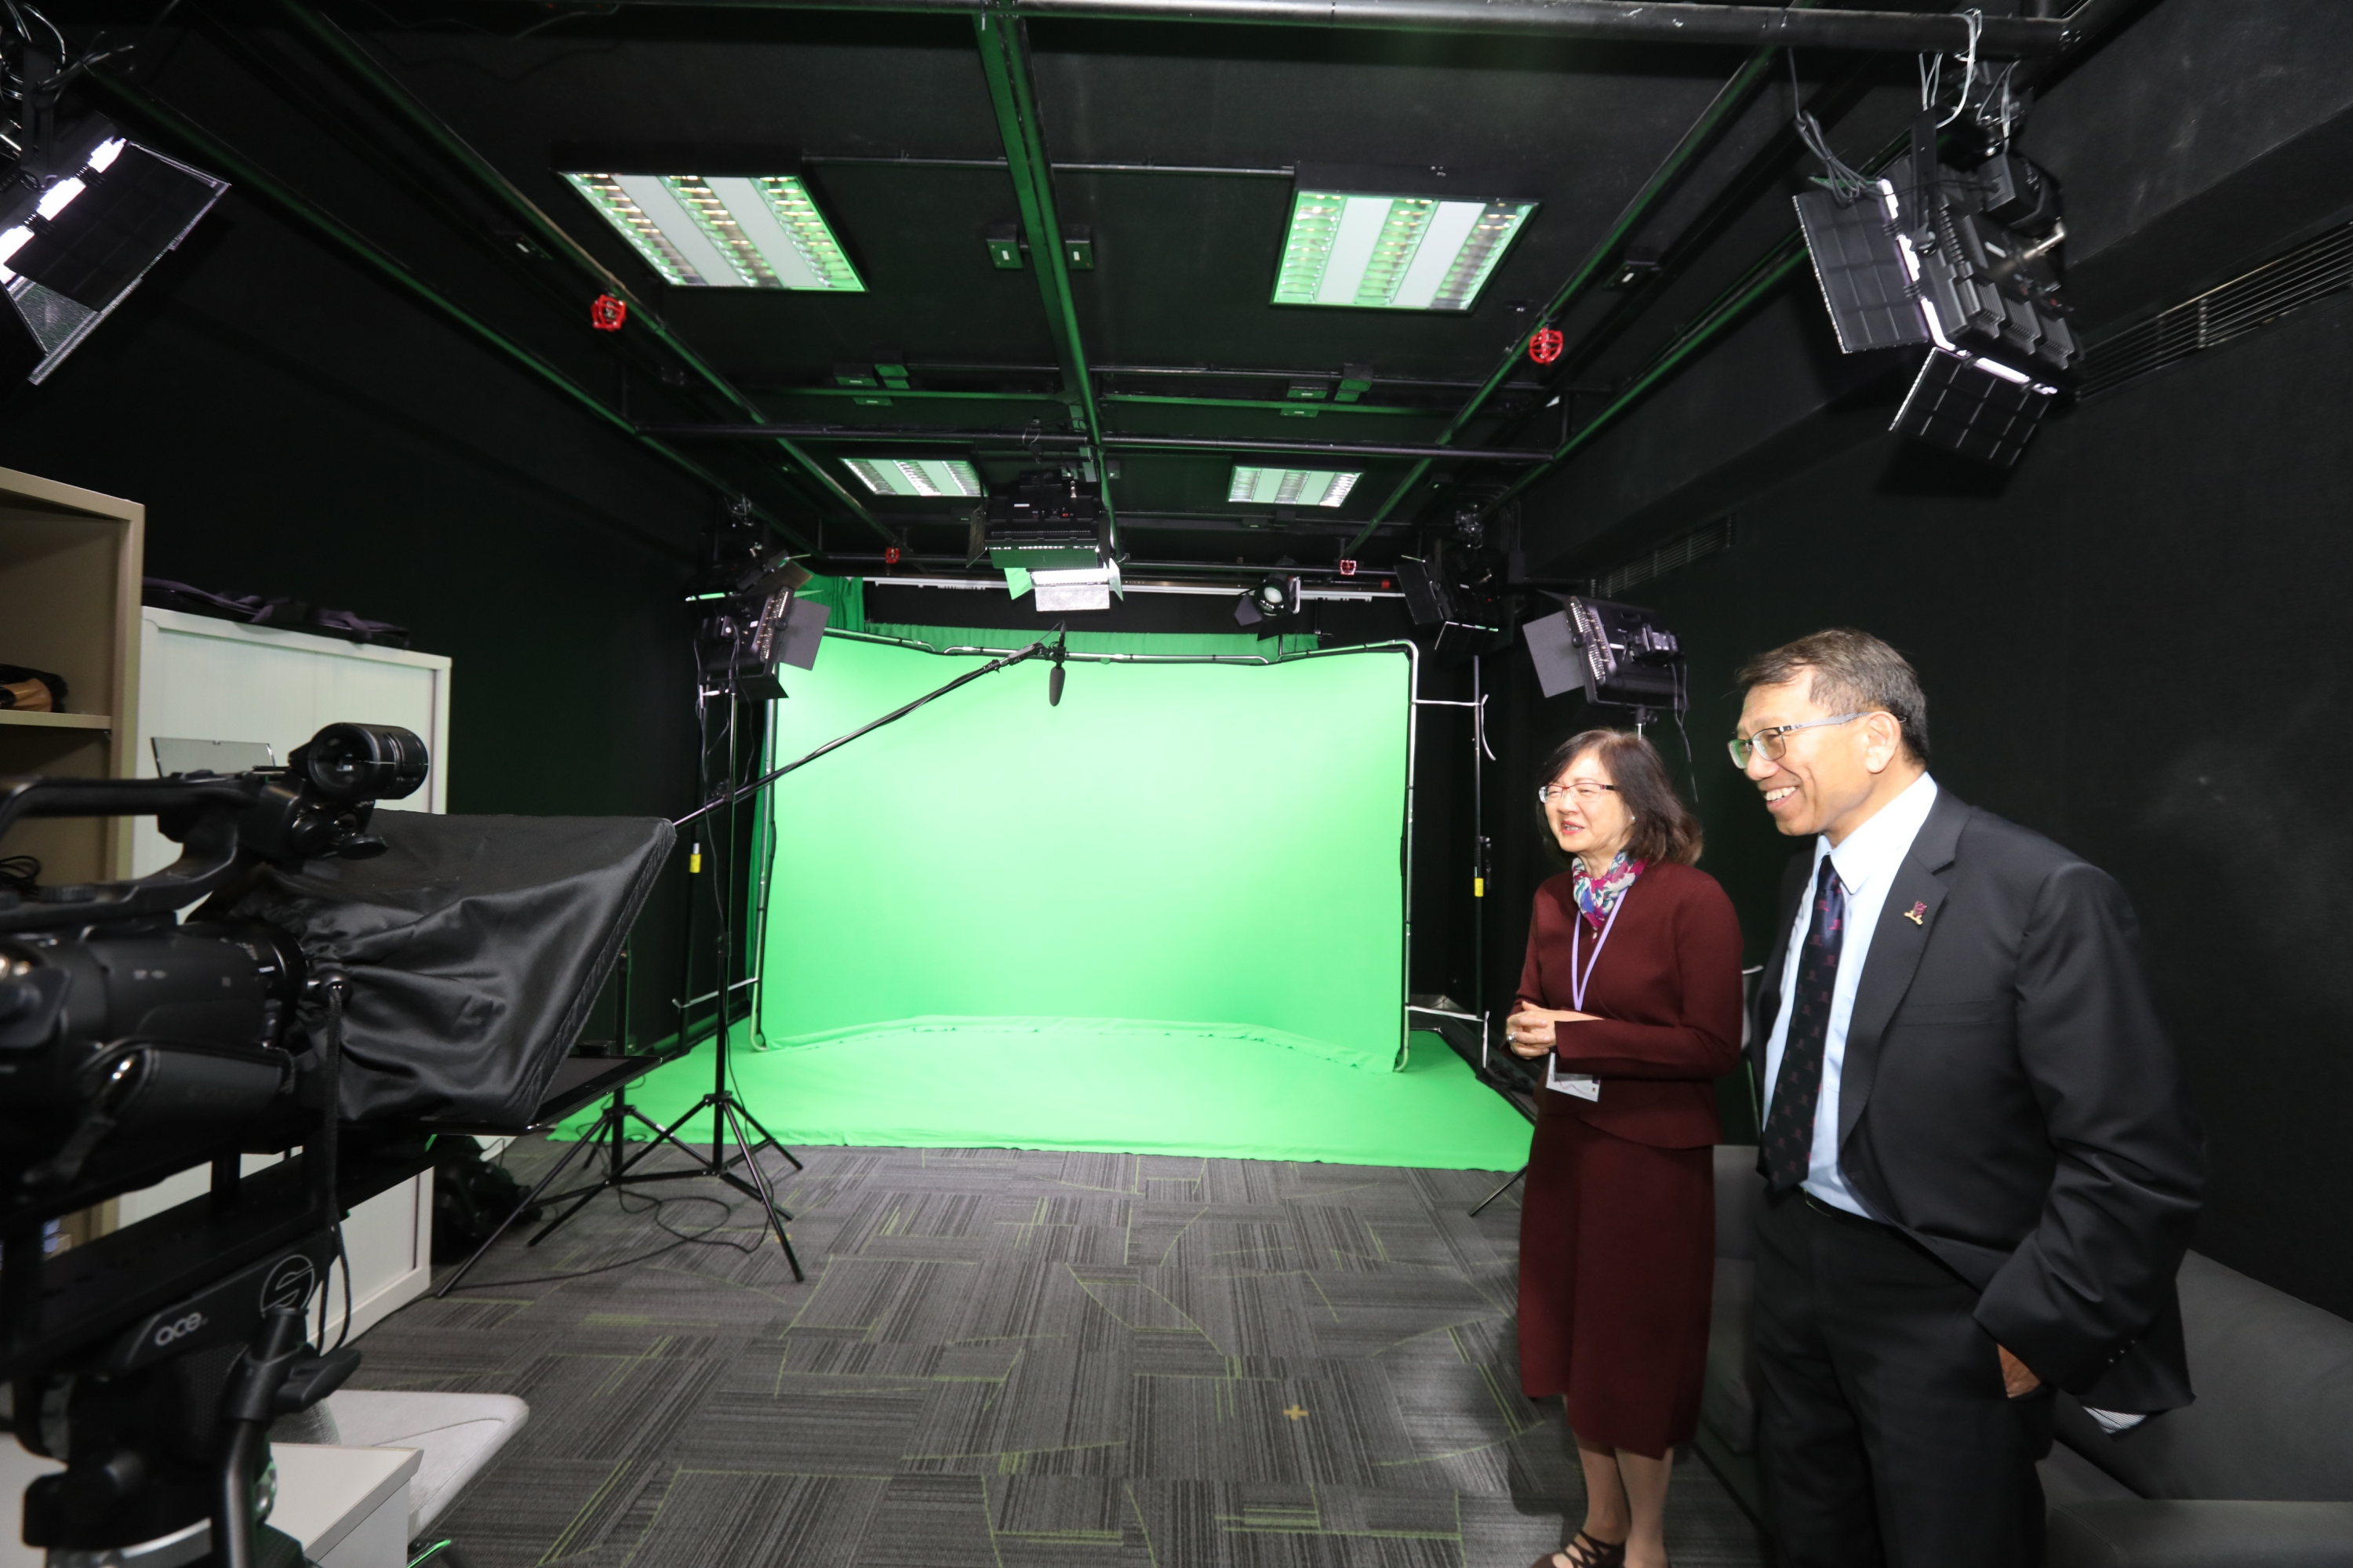 Centre for Learning Enhancement And Research Director Professor Cecilia Chun accompanies Professor Tuan to visit the Centre for eLearning Innovation and Technology (ELITE) in CUHK